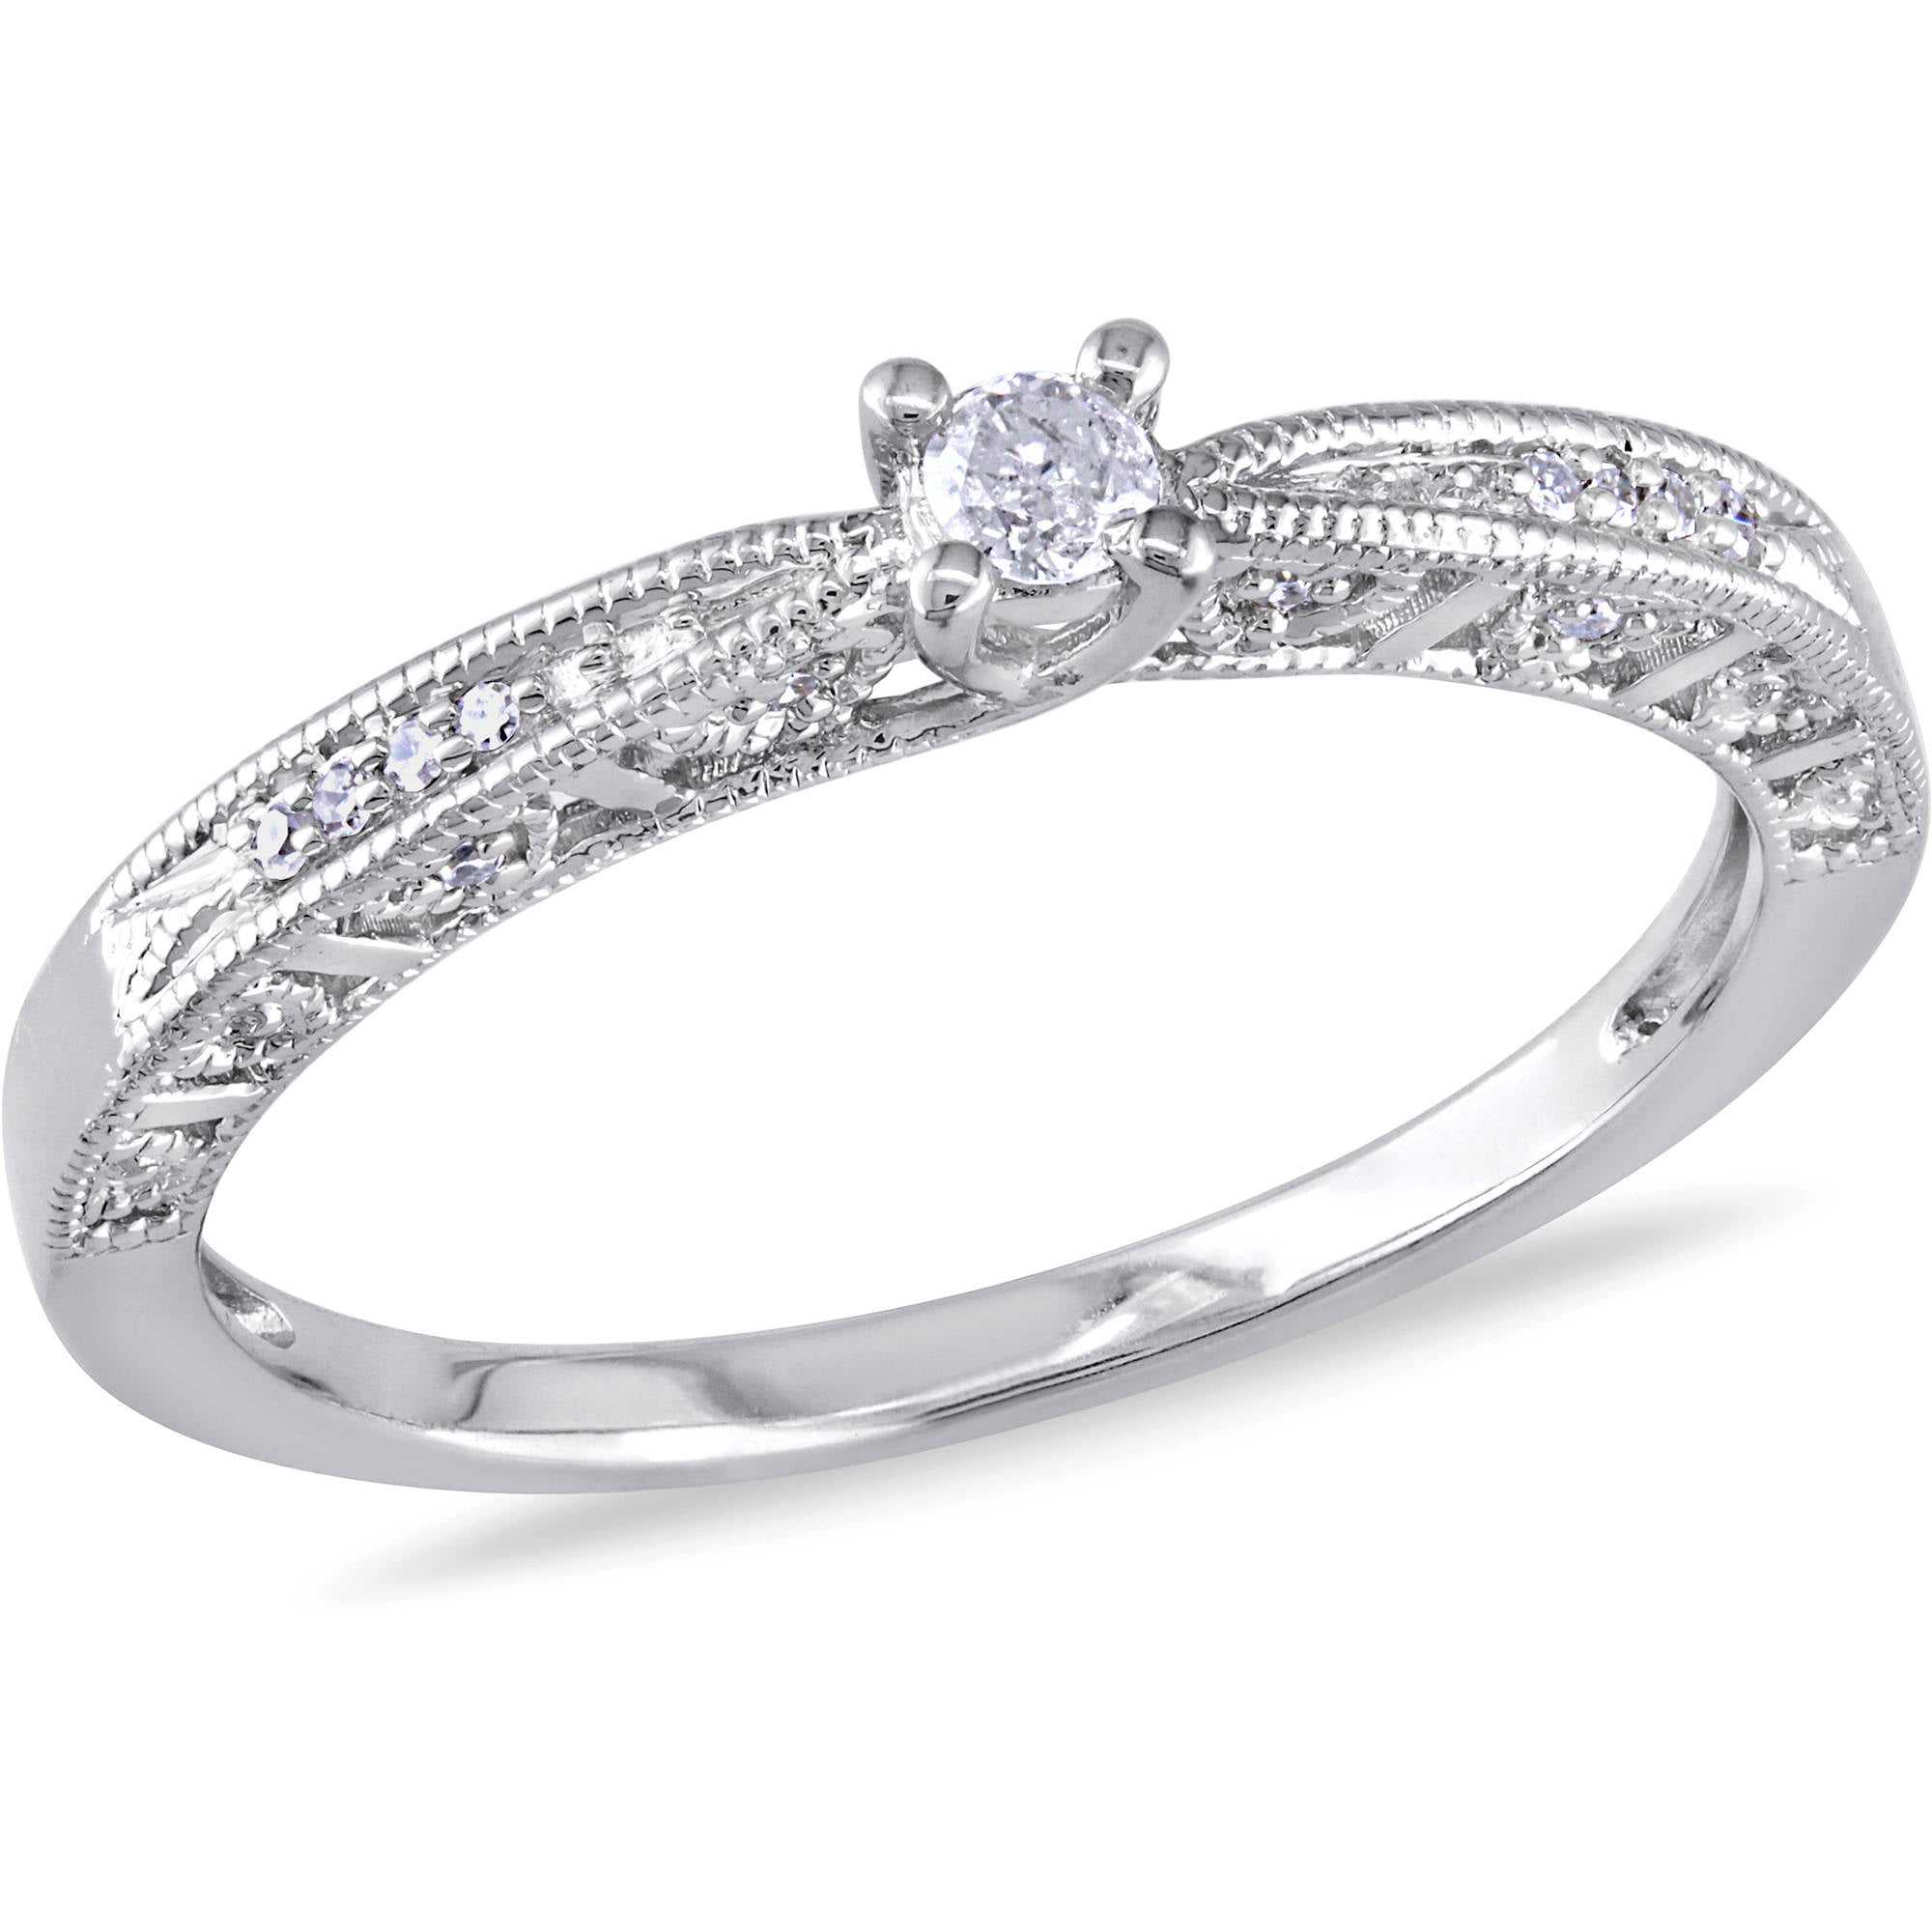 Miabella 110 Carat TW Diamond Sterling Silver Engagement Ring